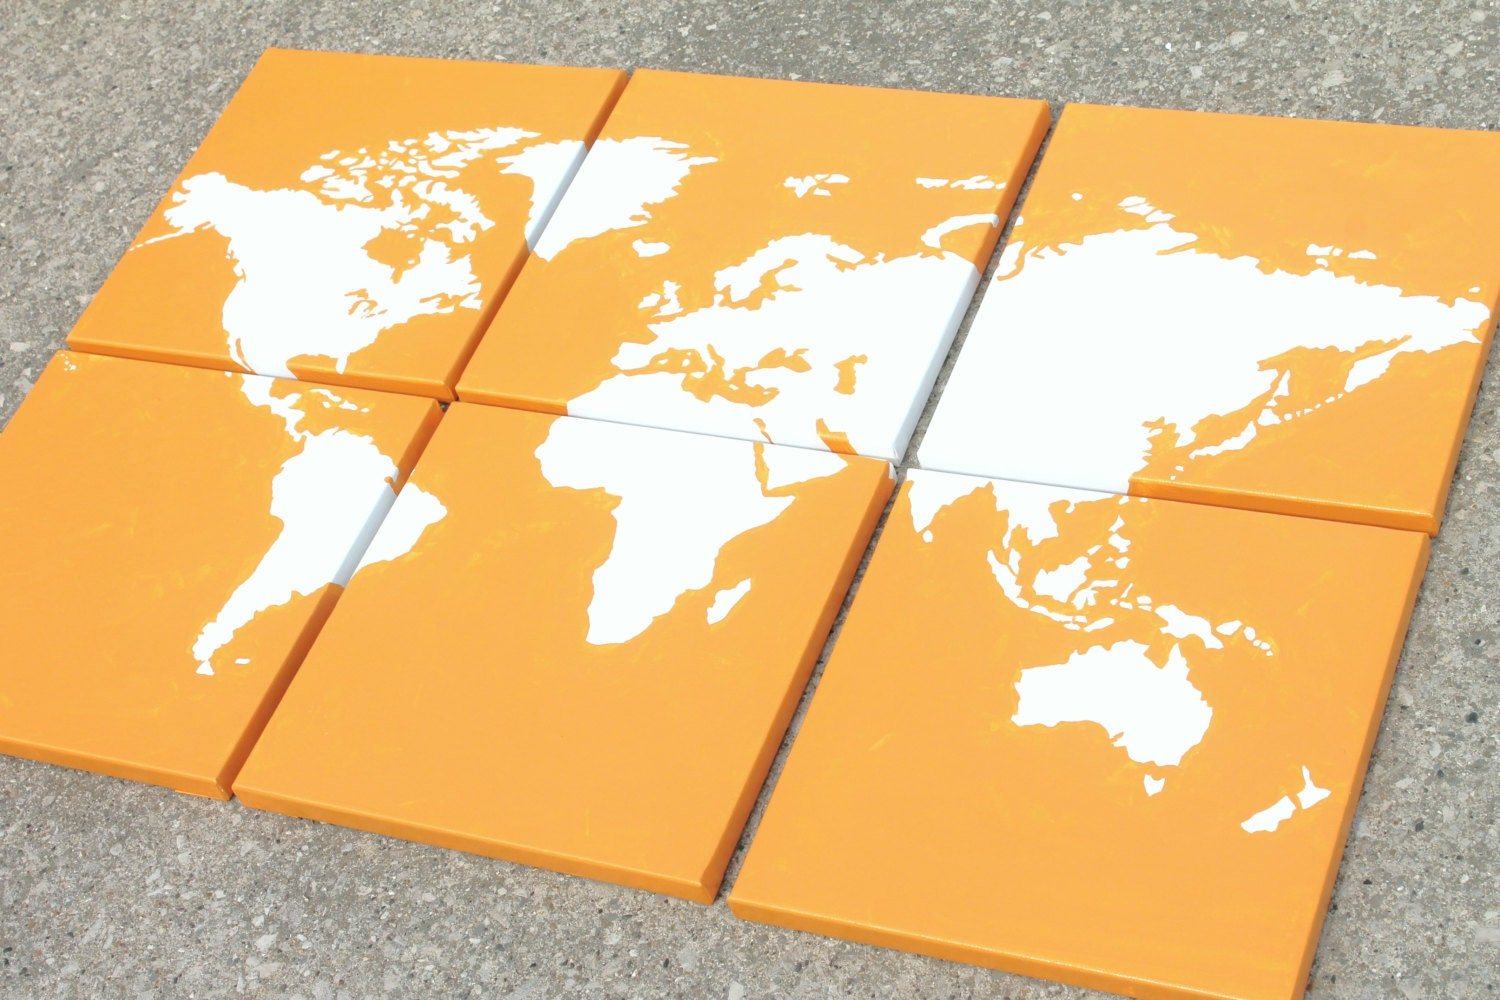 World map canvas 6 12x12s custom colors hand zoom gumiabroncs Images